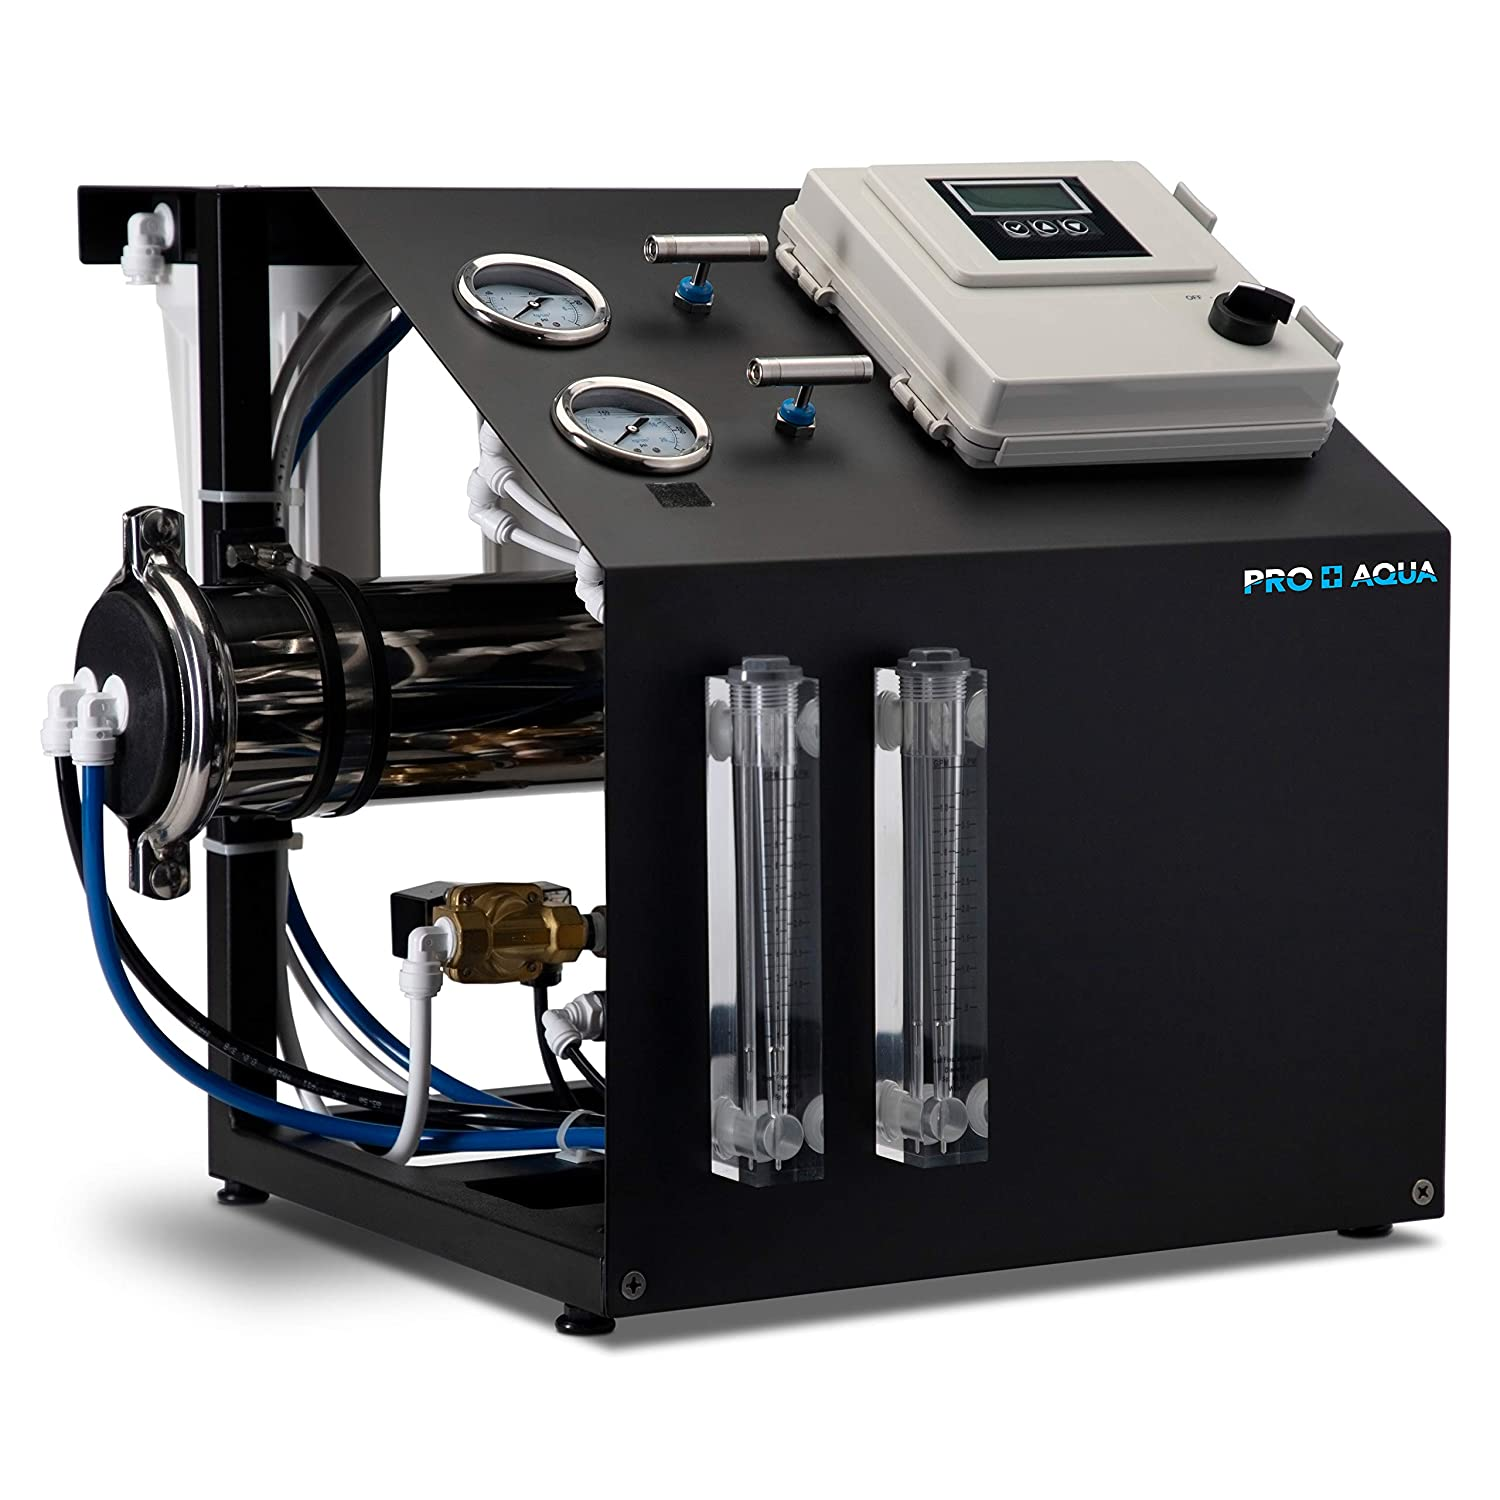 Pro+Aqua commercial reverse osmosis system